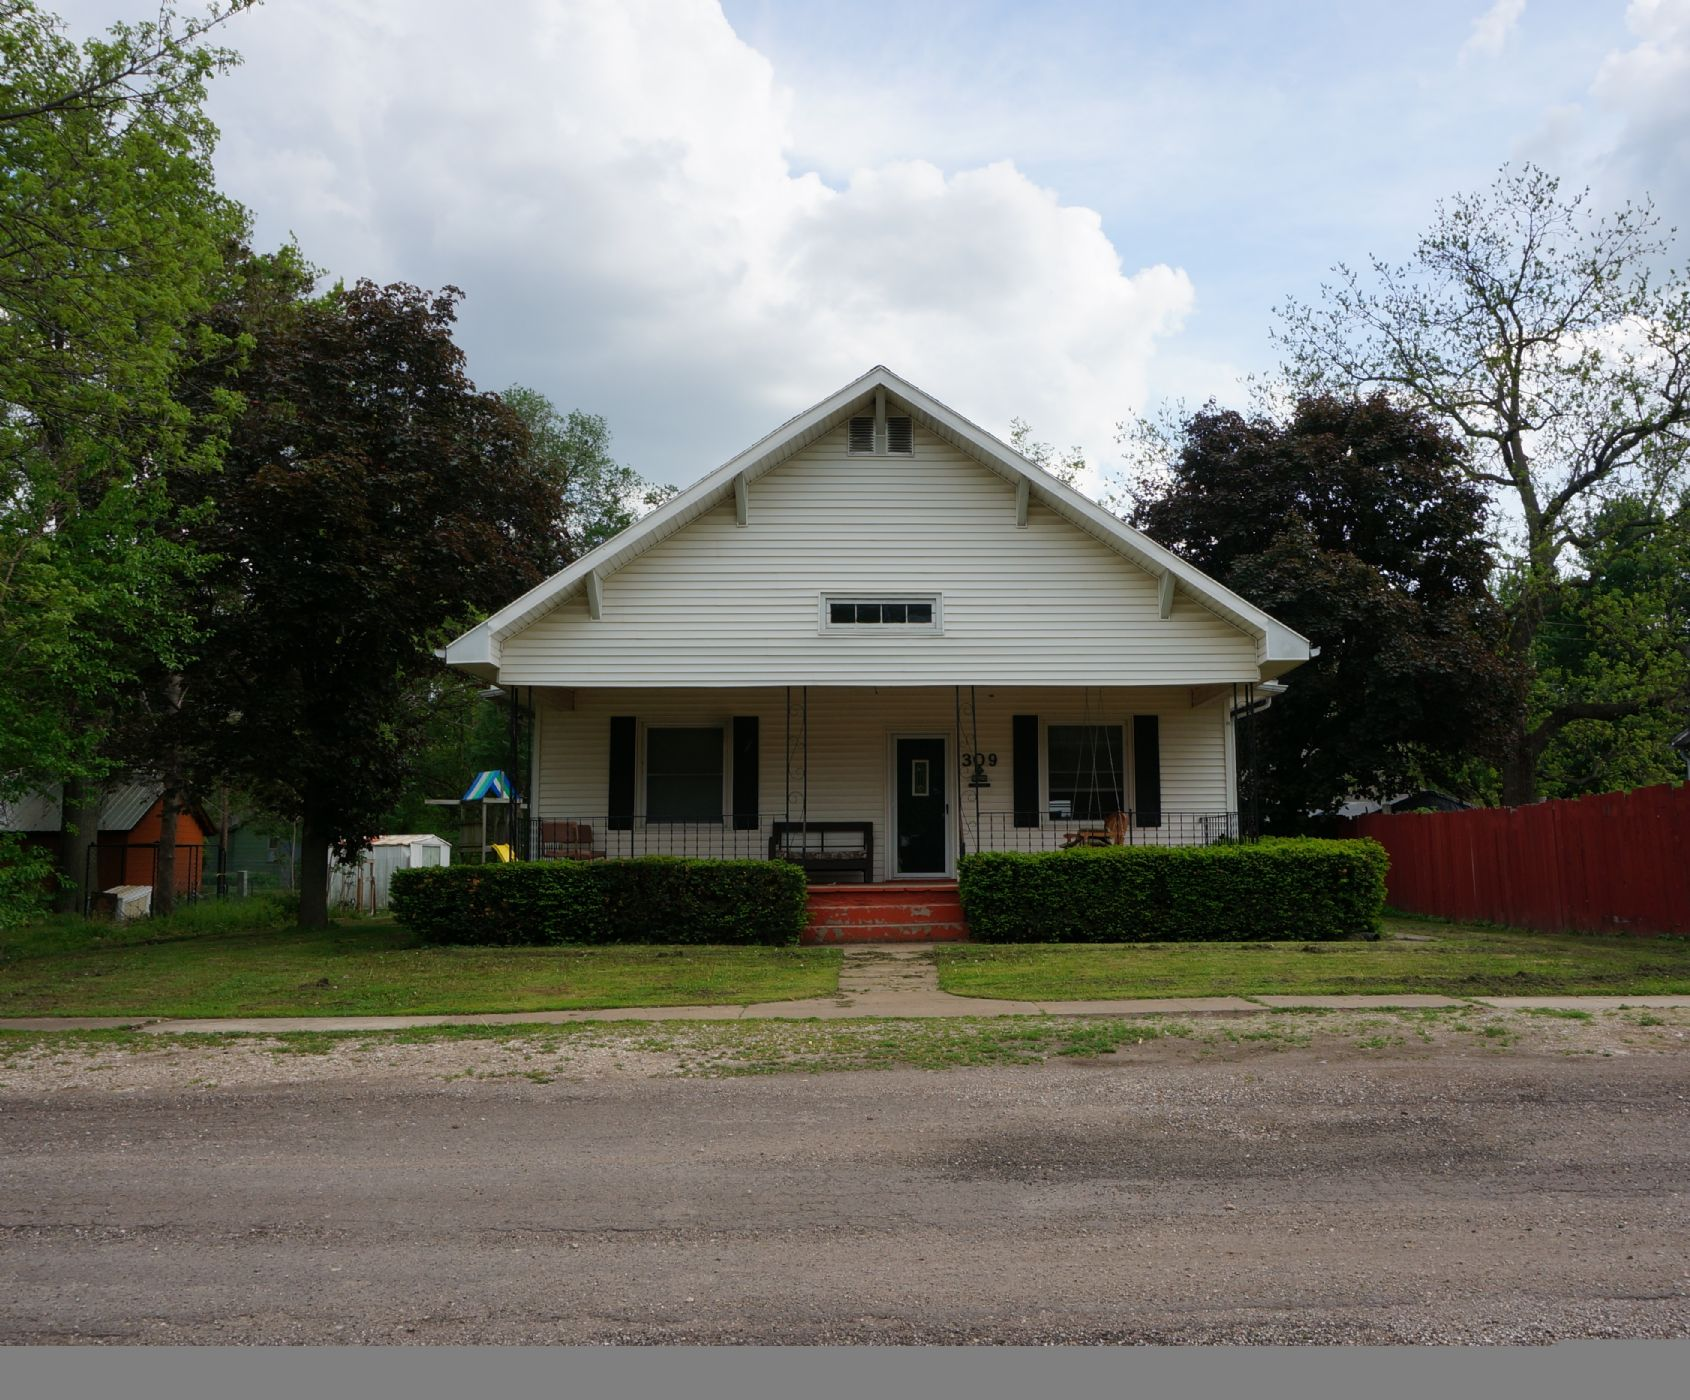 councilgrove Home, KS Real Estate Listing